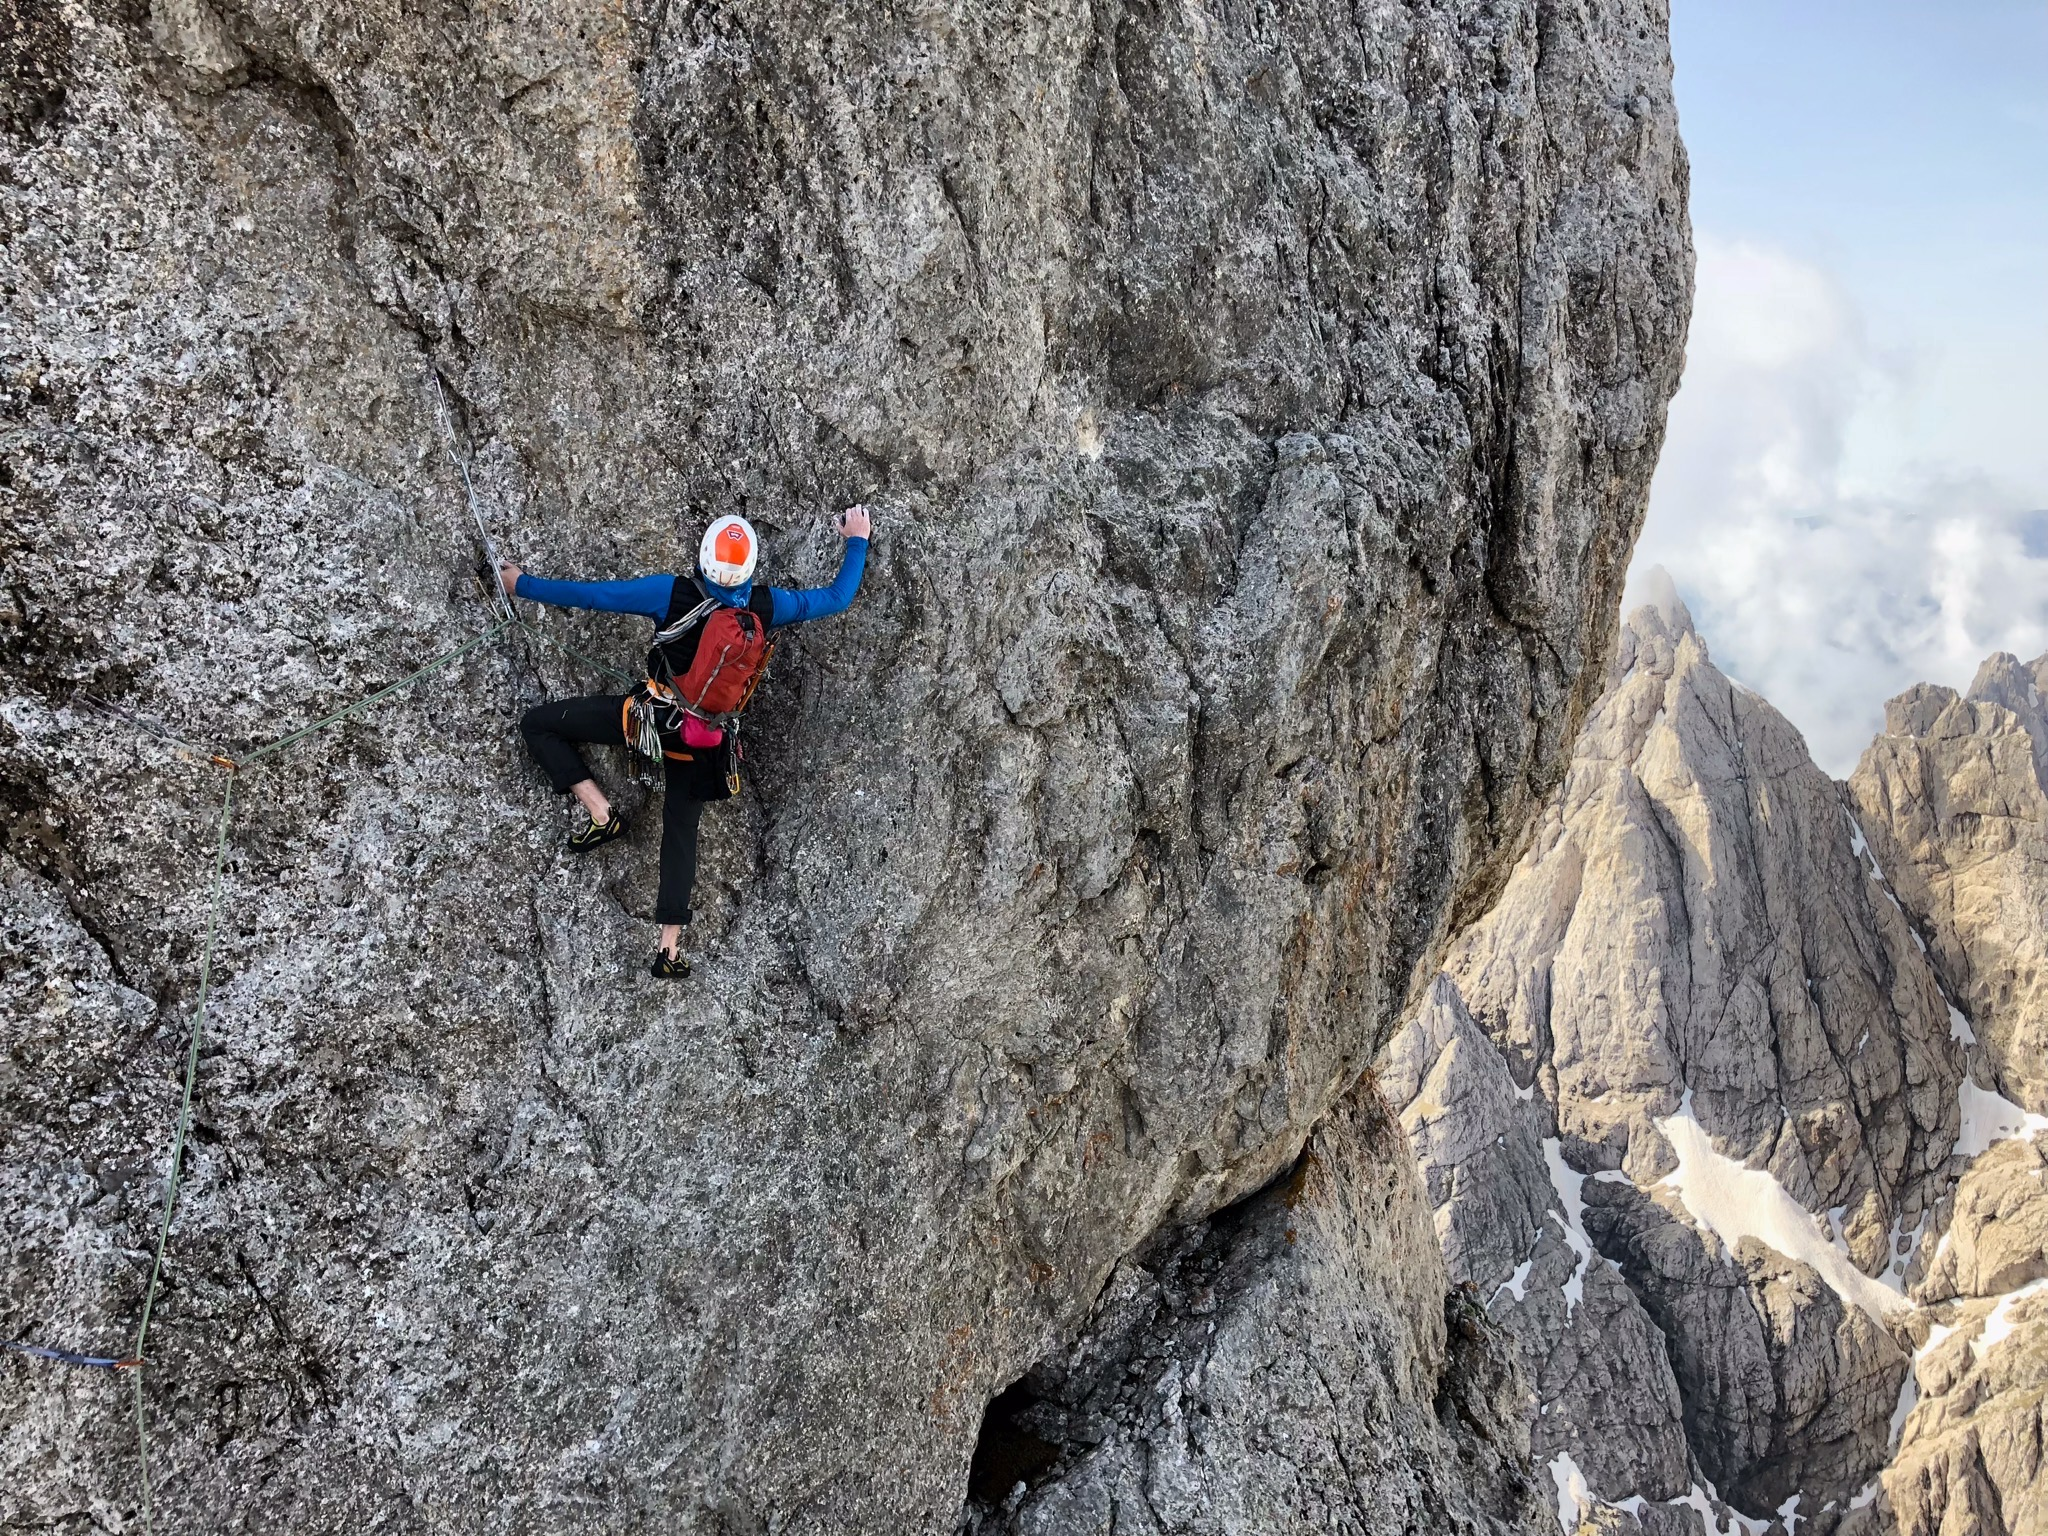 Quality routes in a spectacular position: Pala di San Martino lives up to it's reputation. Photo: Marko Prezelj